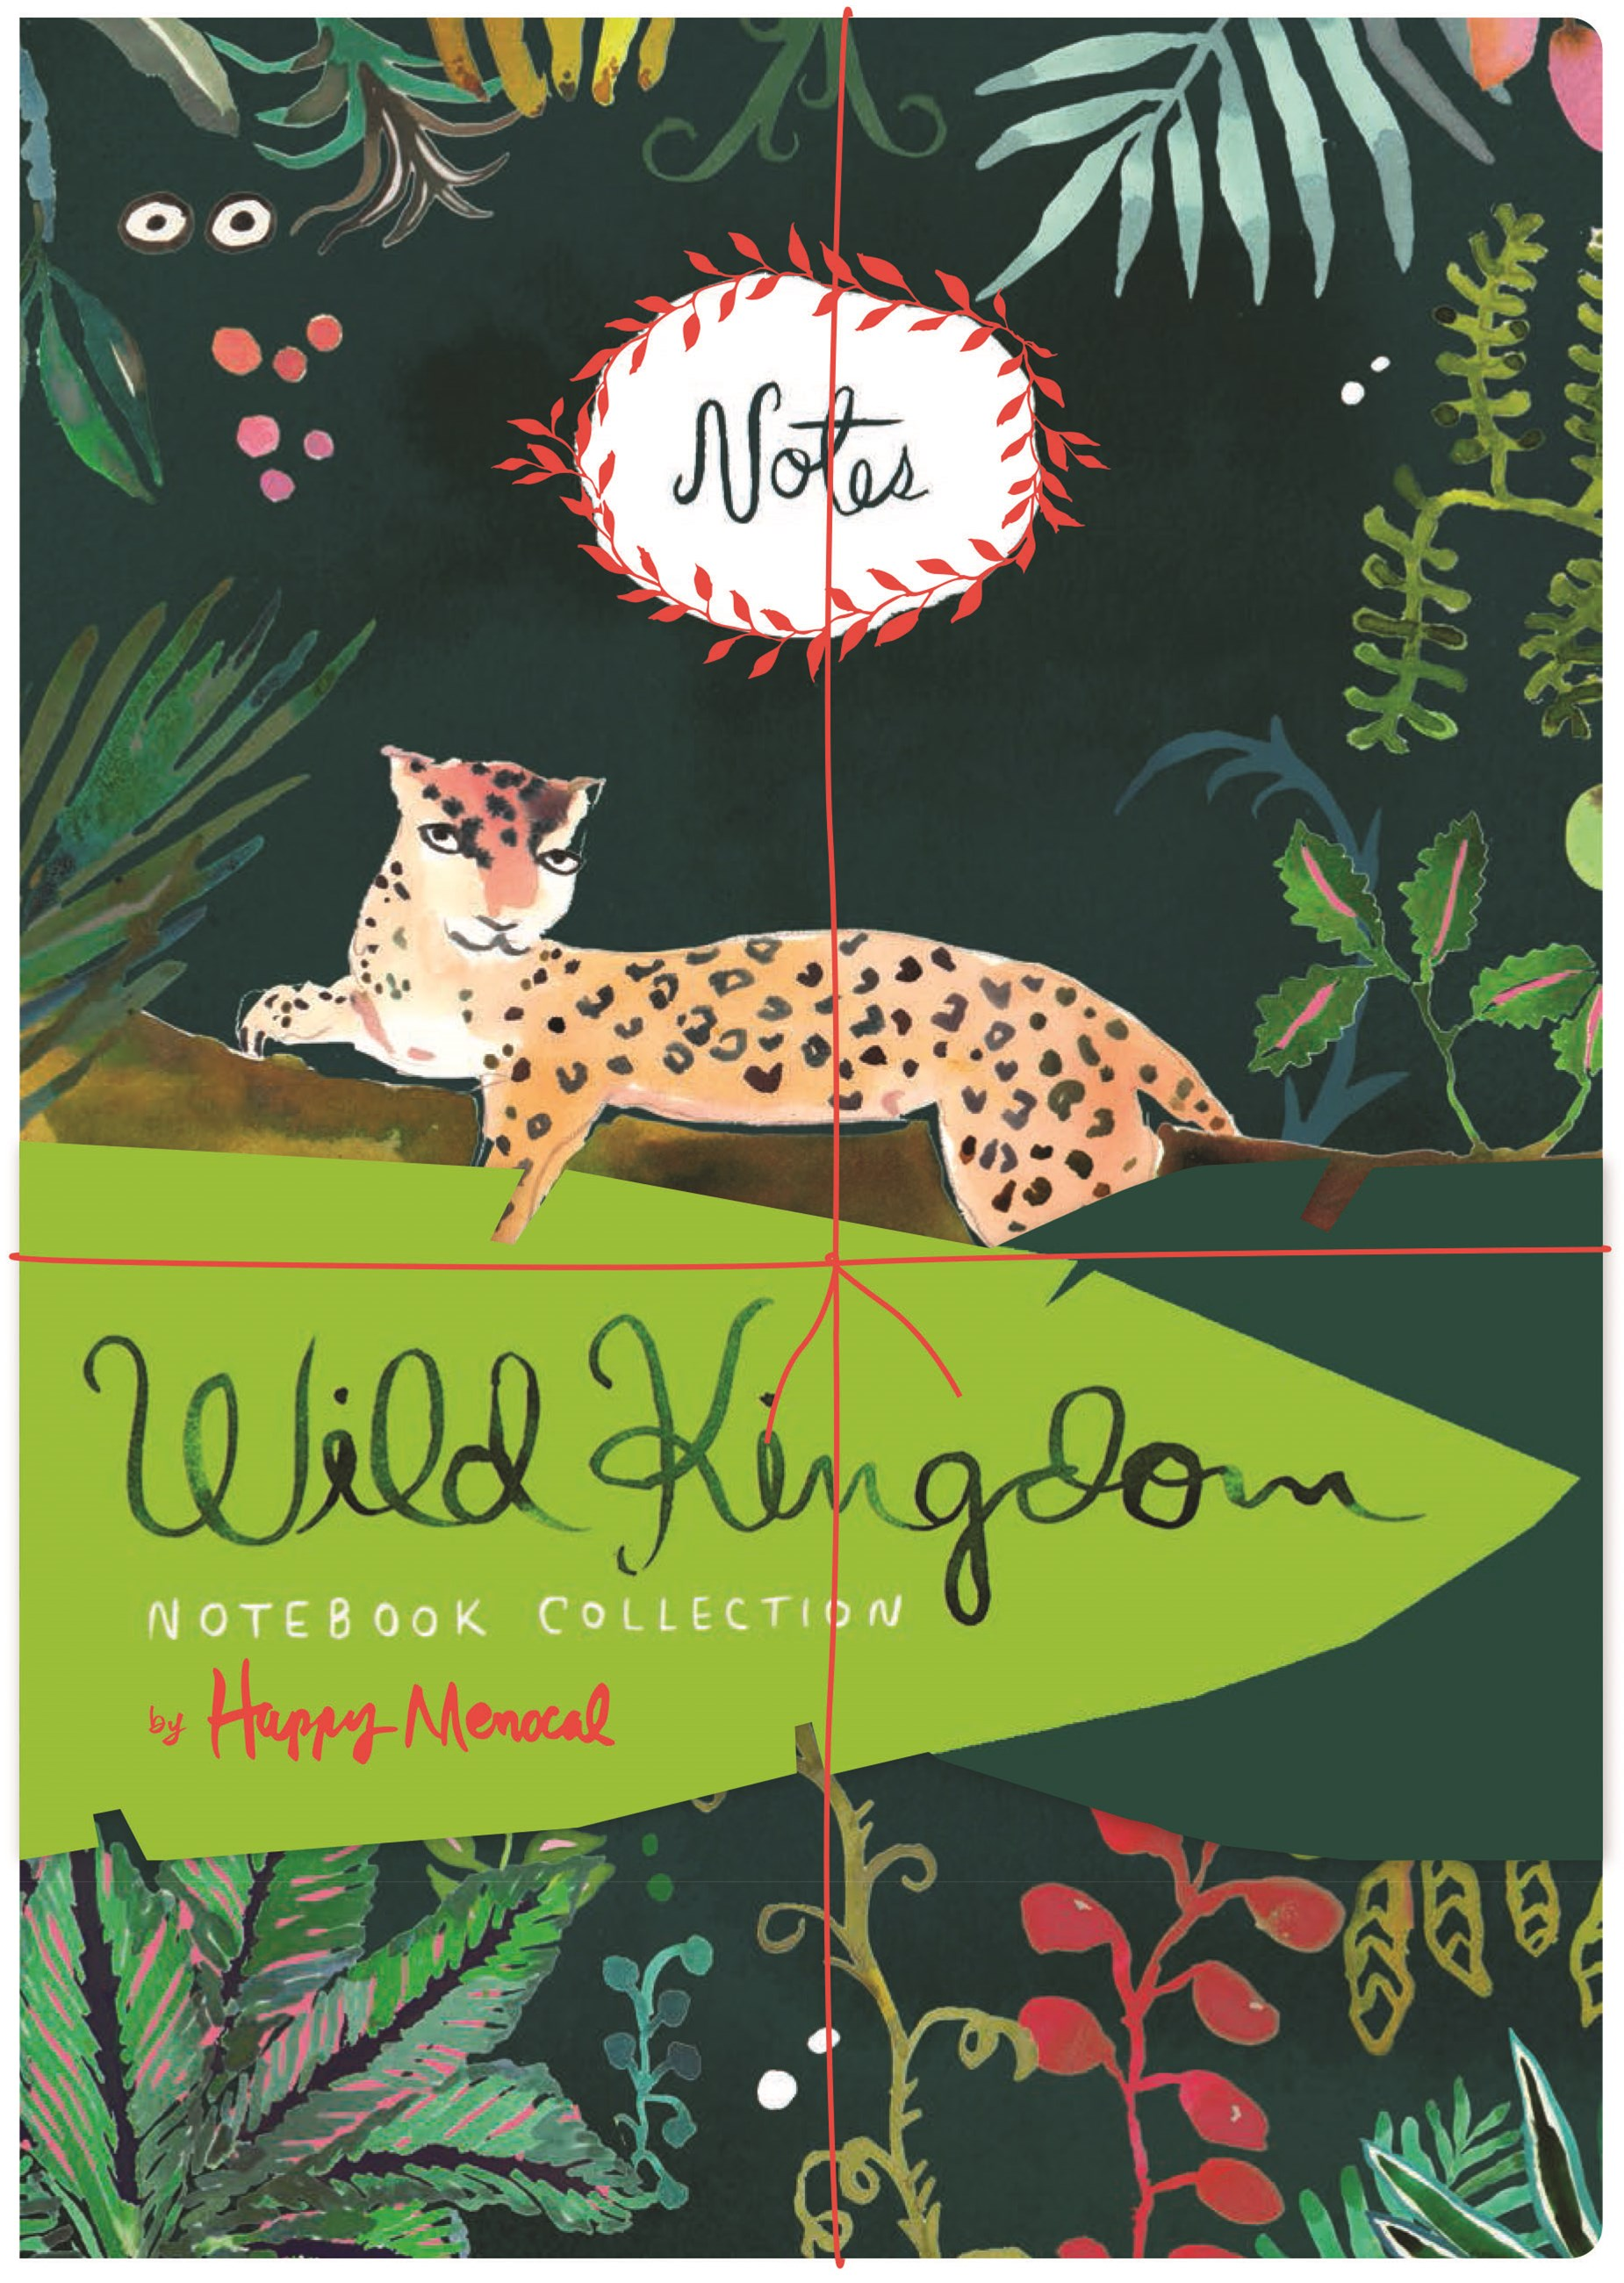 Wild Kingdom Notebook Collection